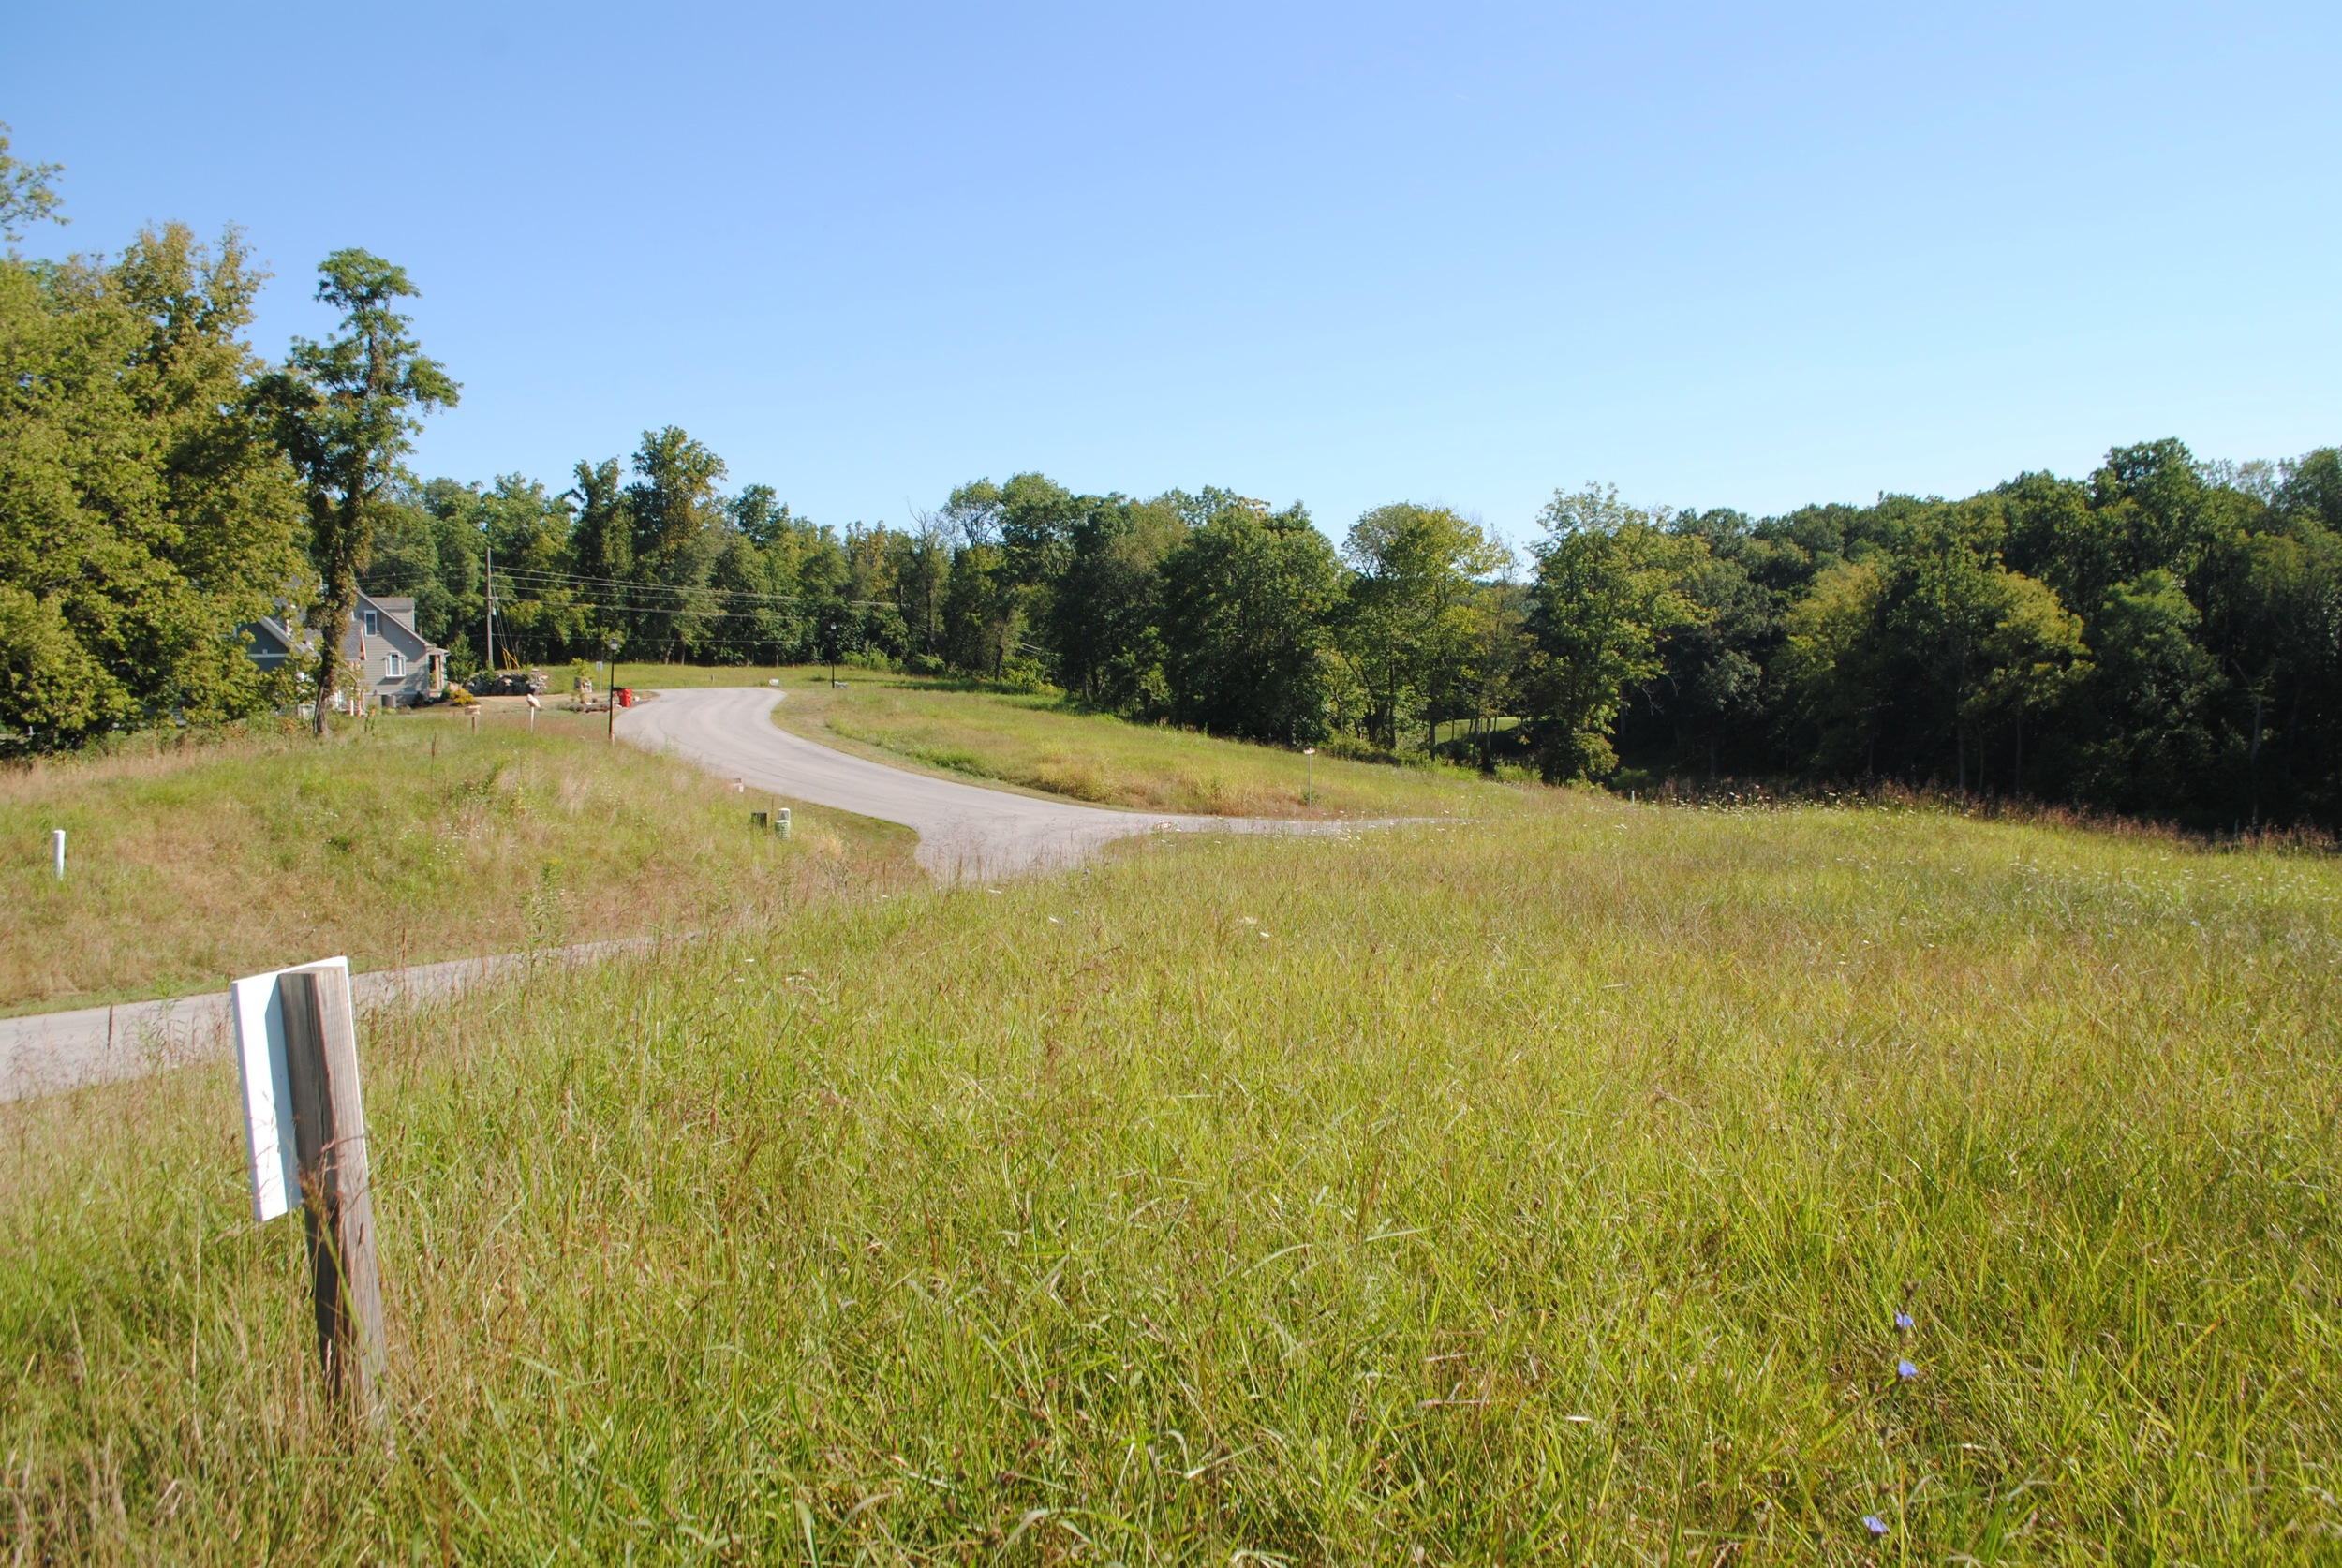 Looking back toward entrance from Lot #6